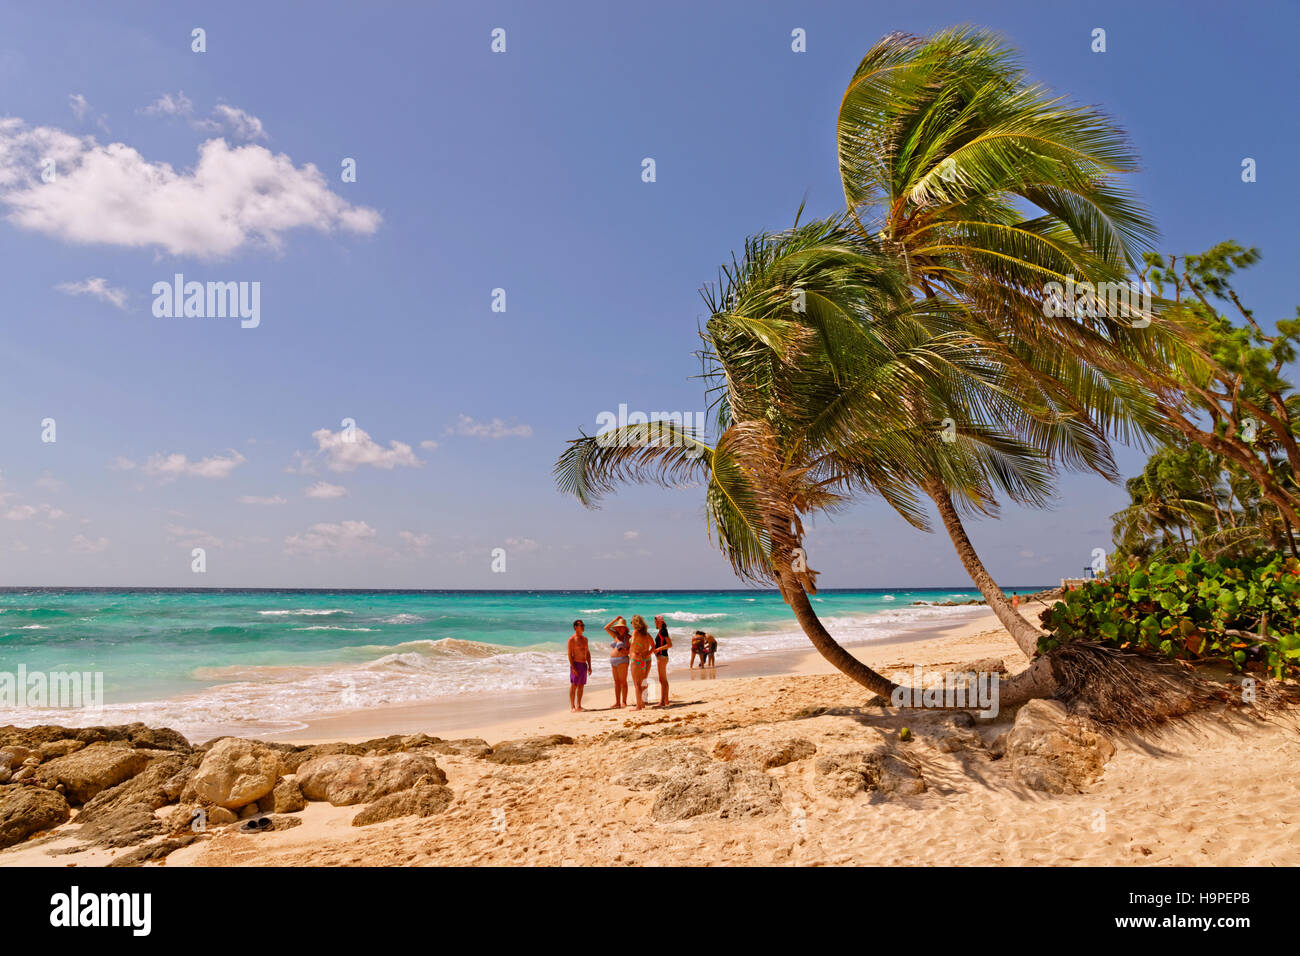 Dover Beach, St. Lawrence Gap, South Coast, Barbados, Caribbean. - Stock Image